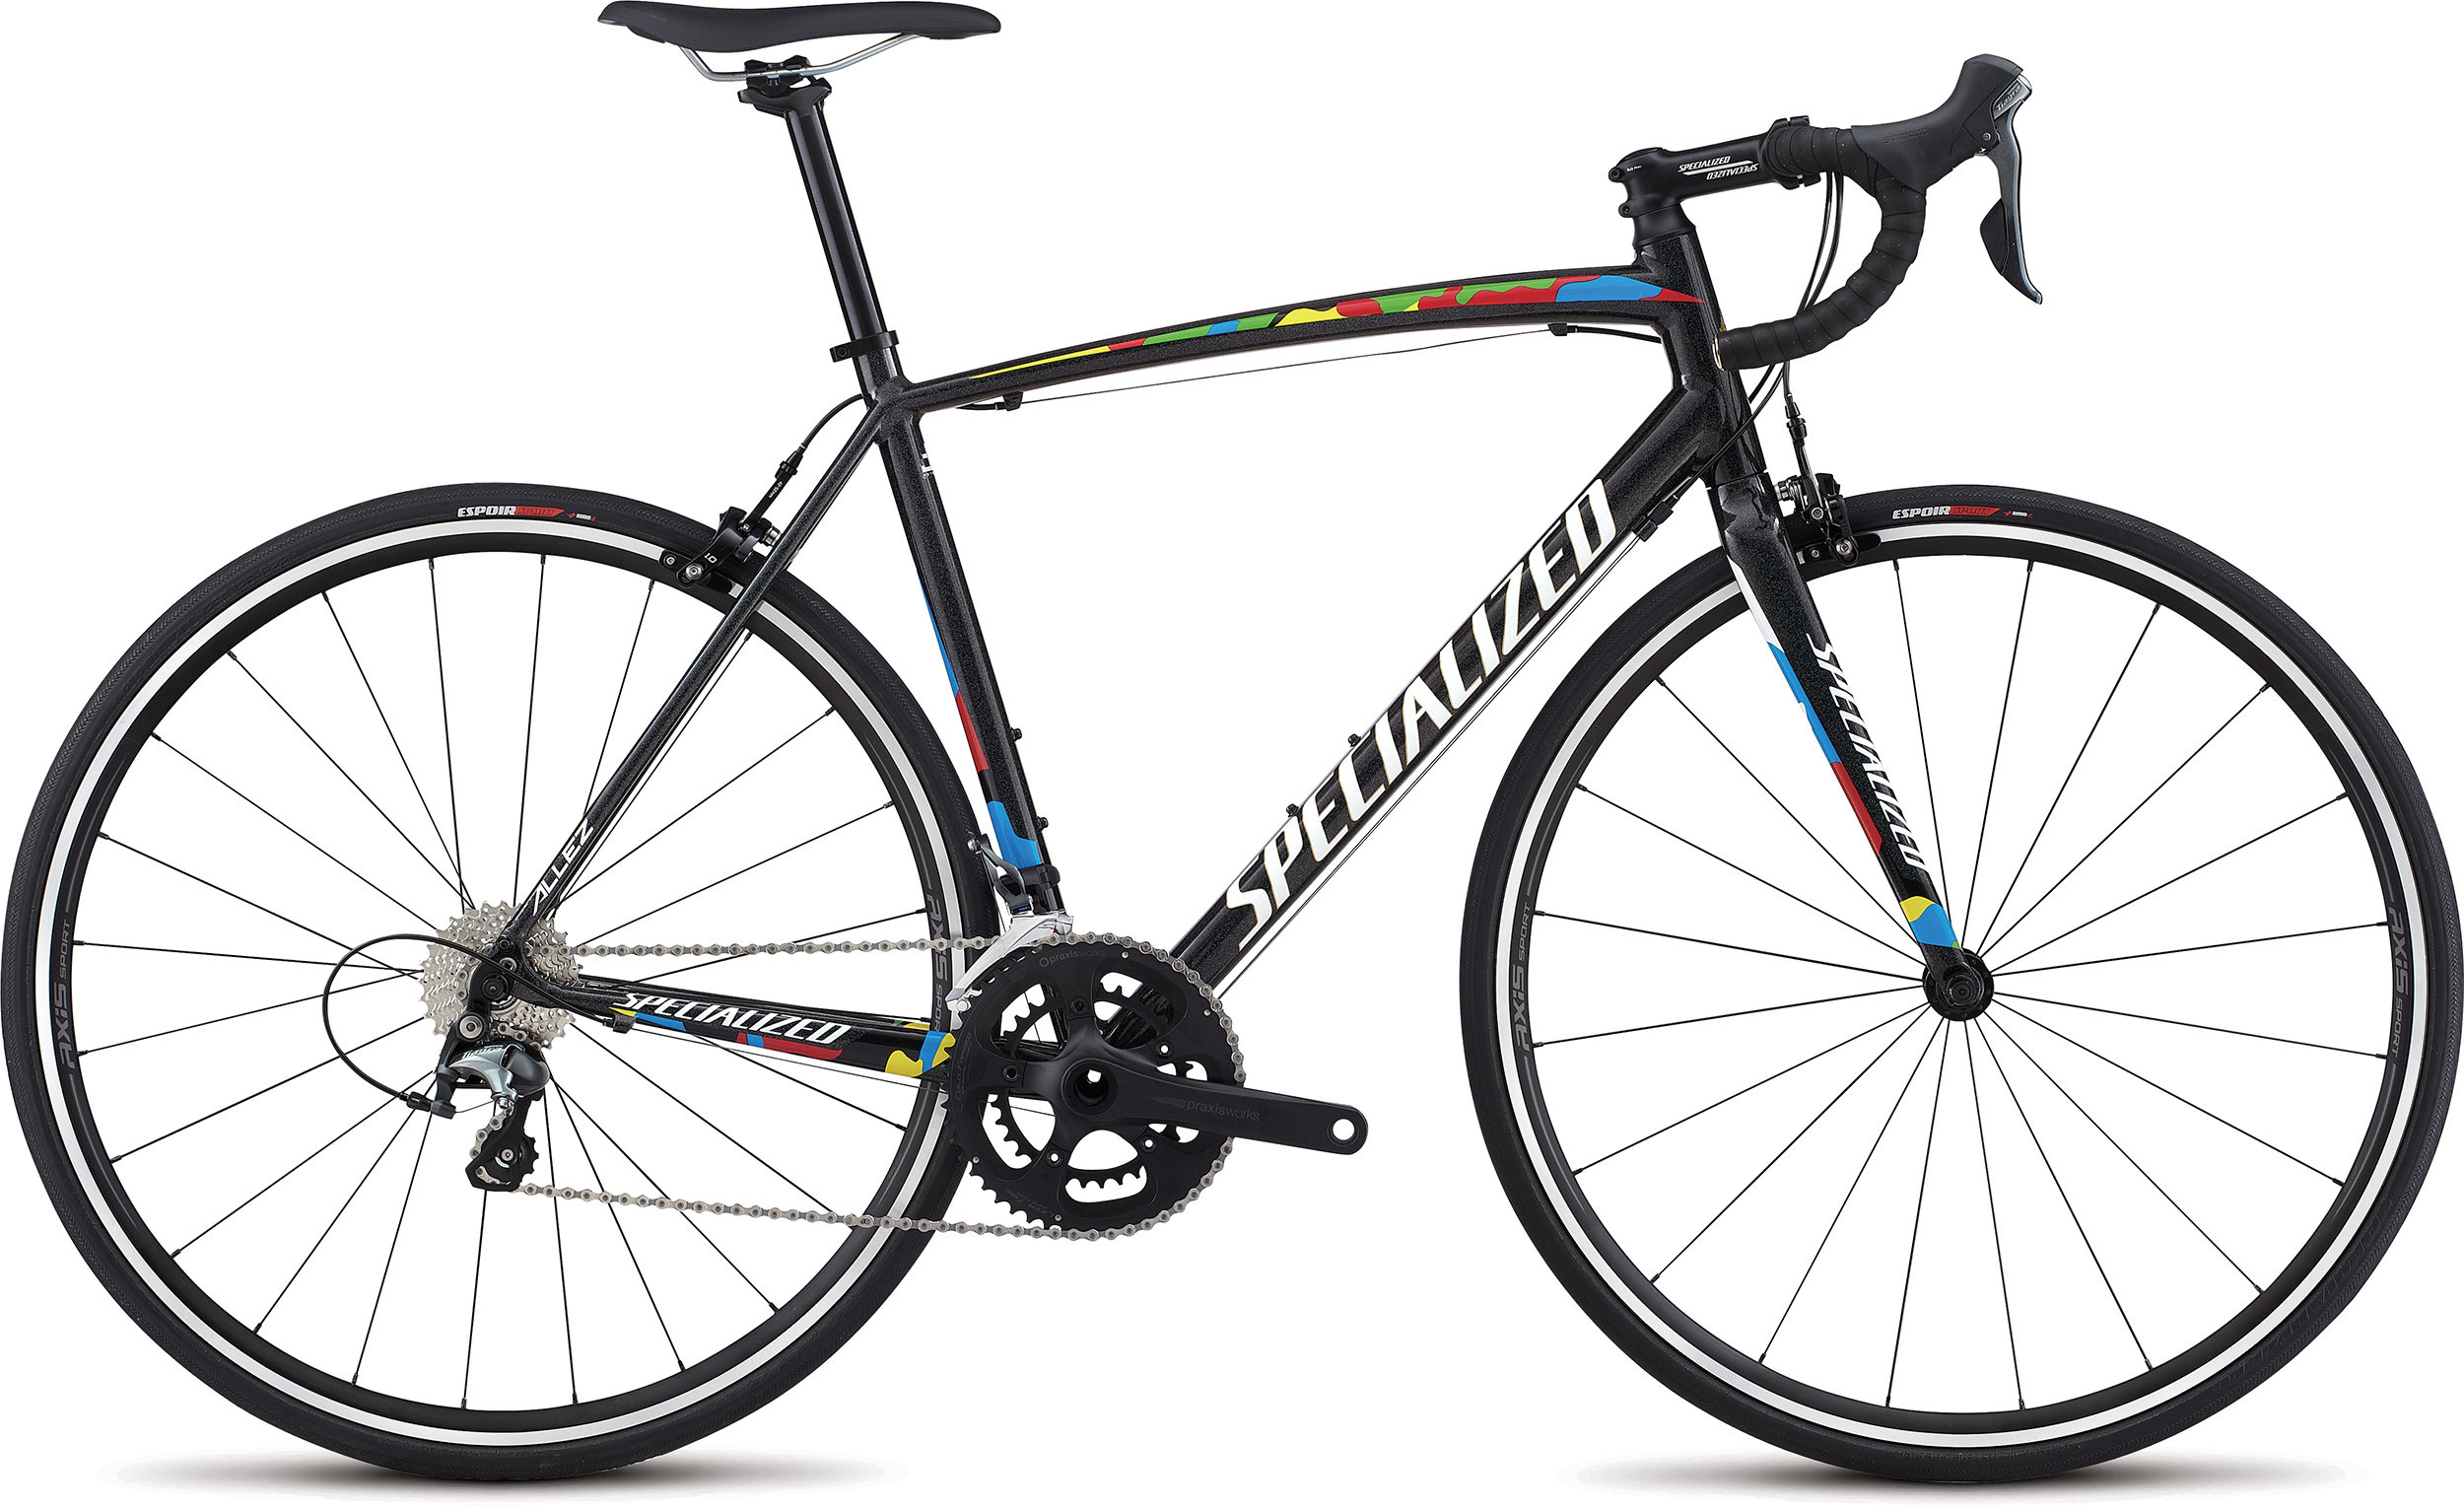 SPECIALIZED ALLEZ E5 ELITE SAGAN WC 49 - Bikedreams & Dustbikes